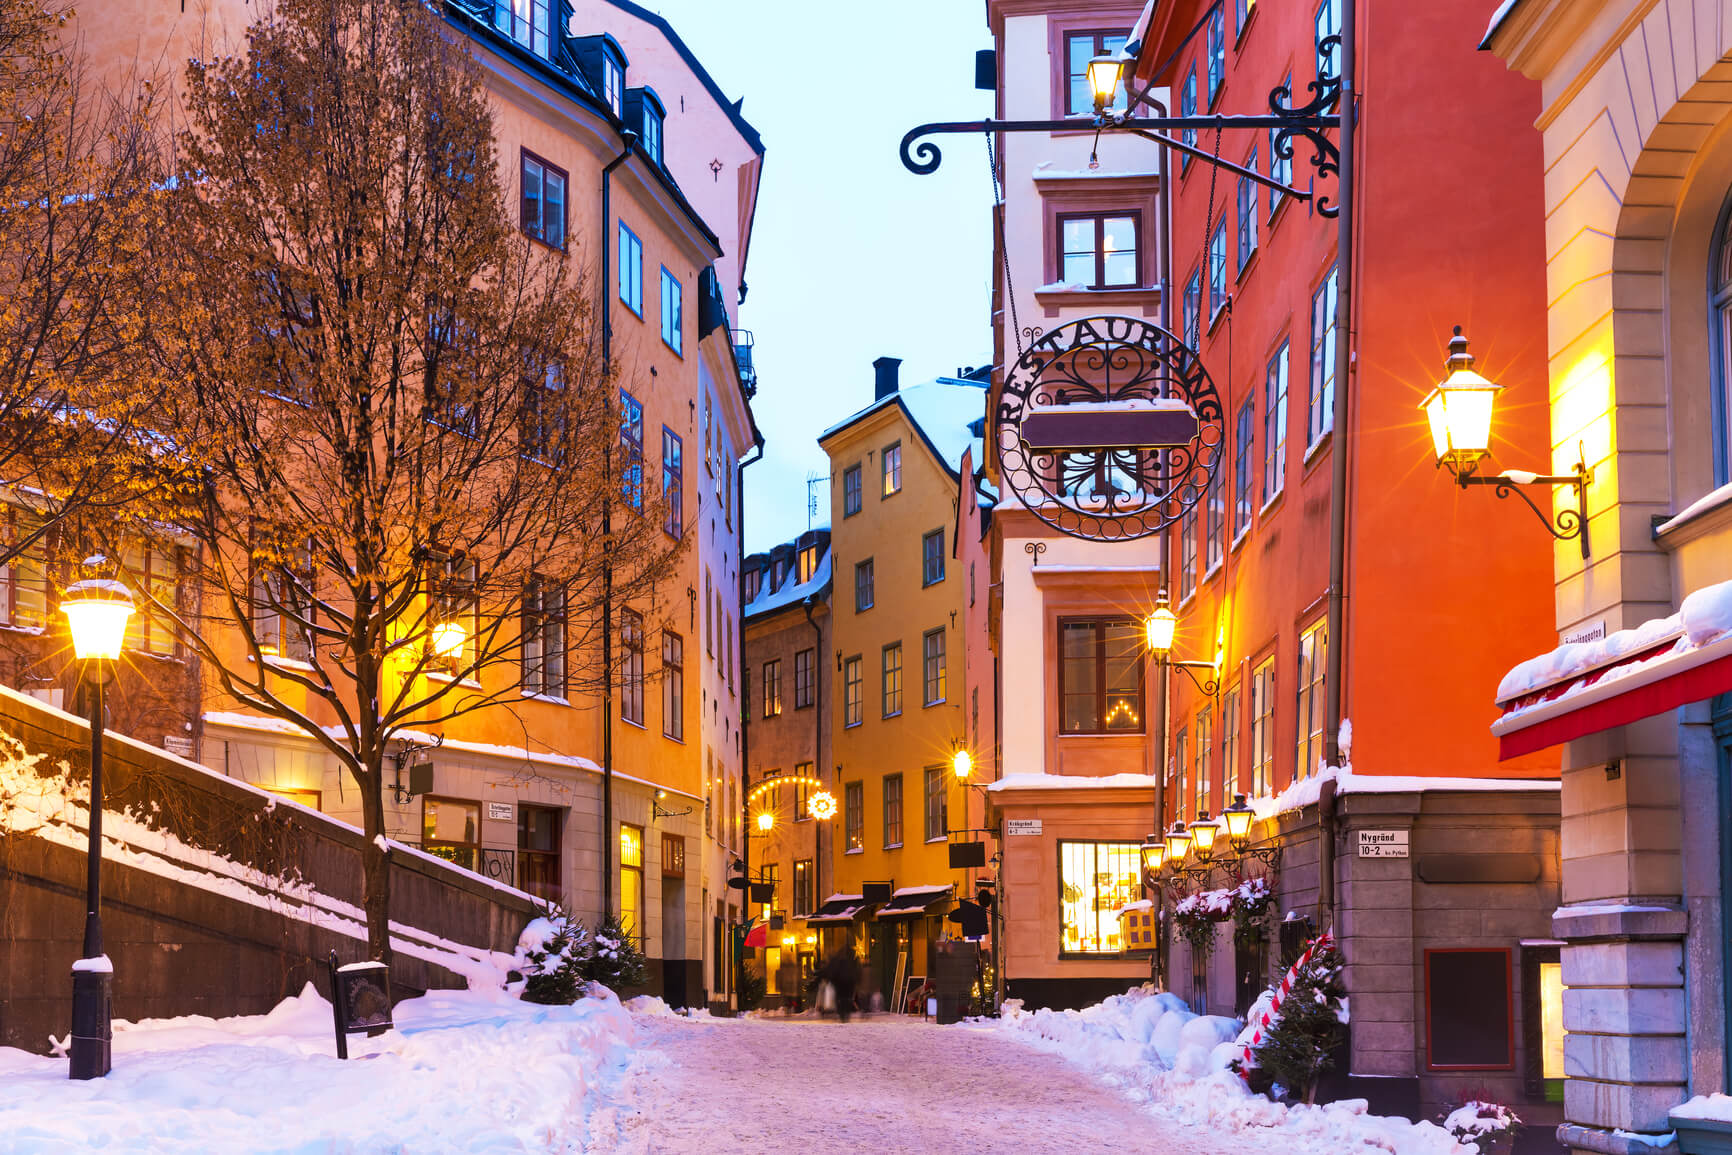 New York to Stockholm, Sweden for only $326 roundtrip